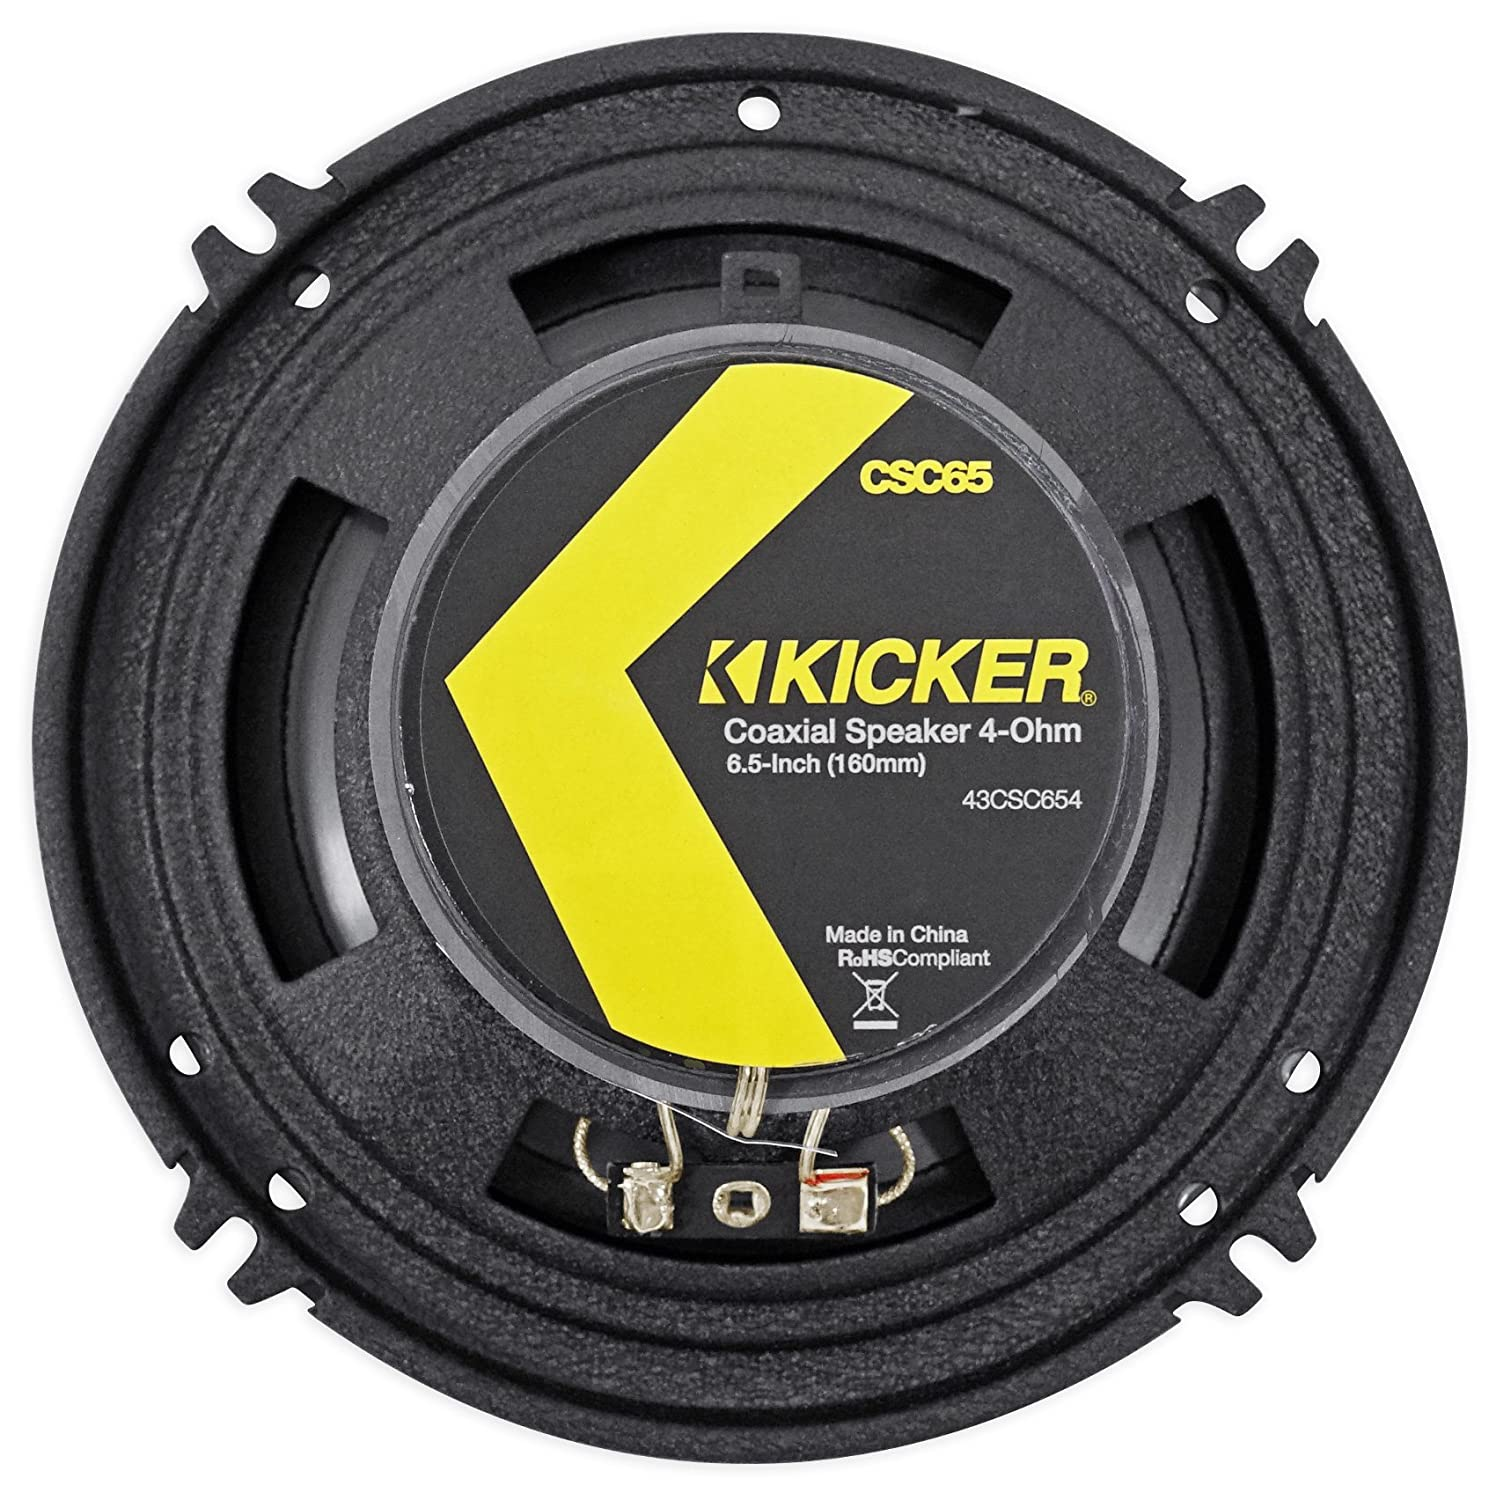 Amazon.com: Package: Pair of Kicker 40CS654 6.5